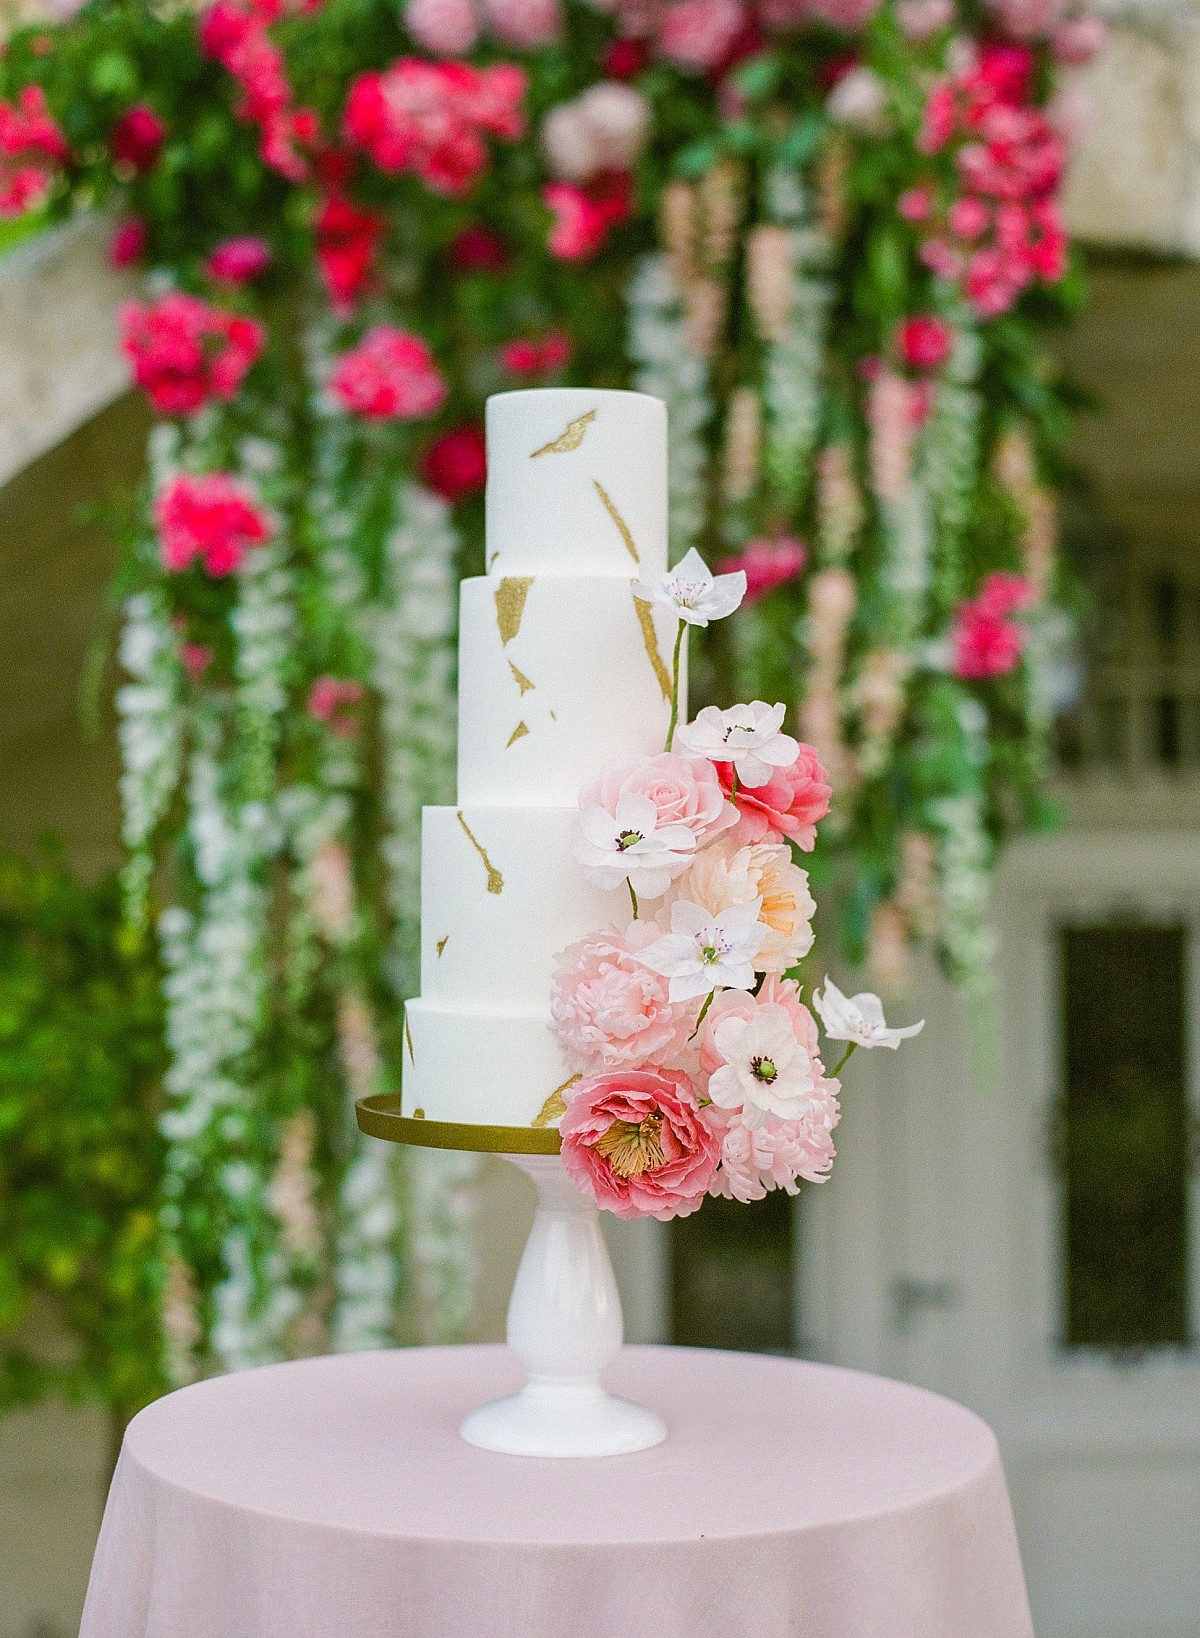 Hot Pink Florals at a Stunning Chateau in France